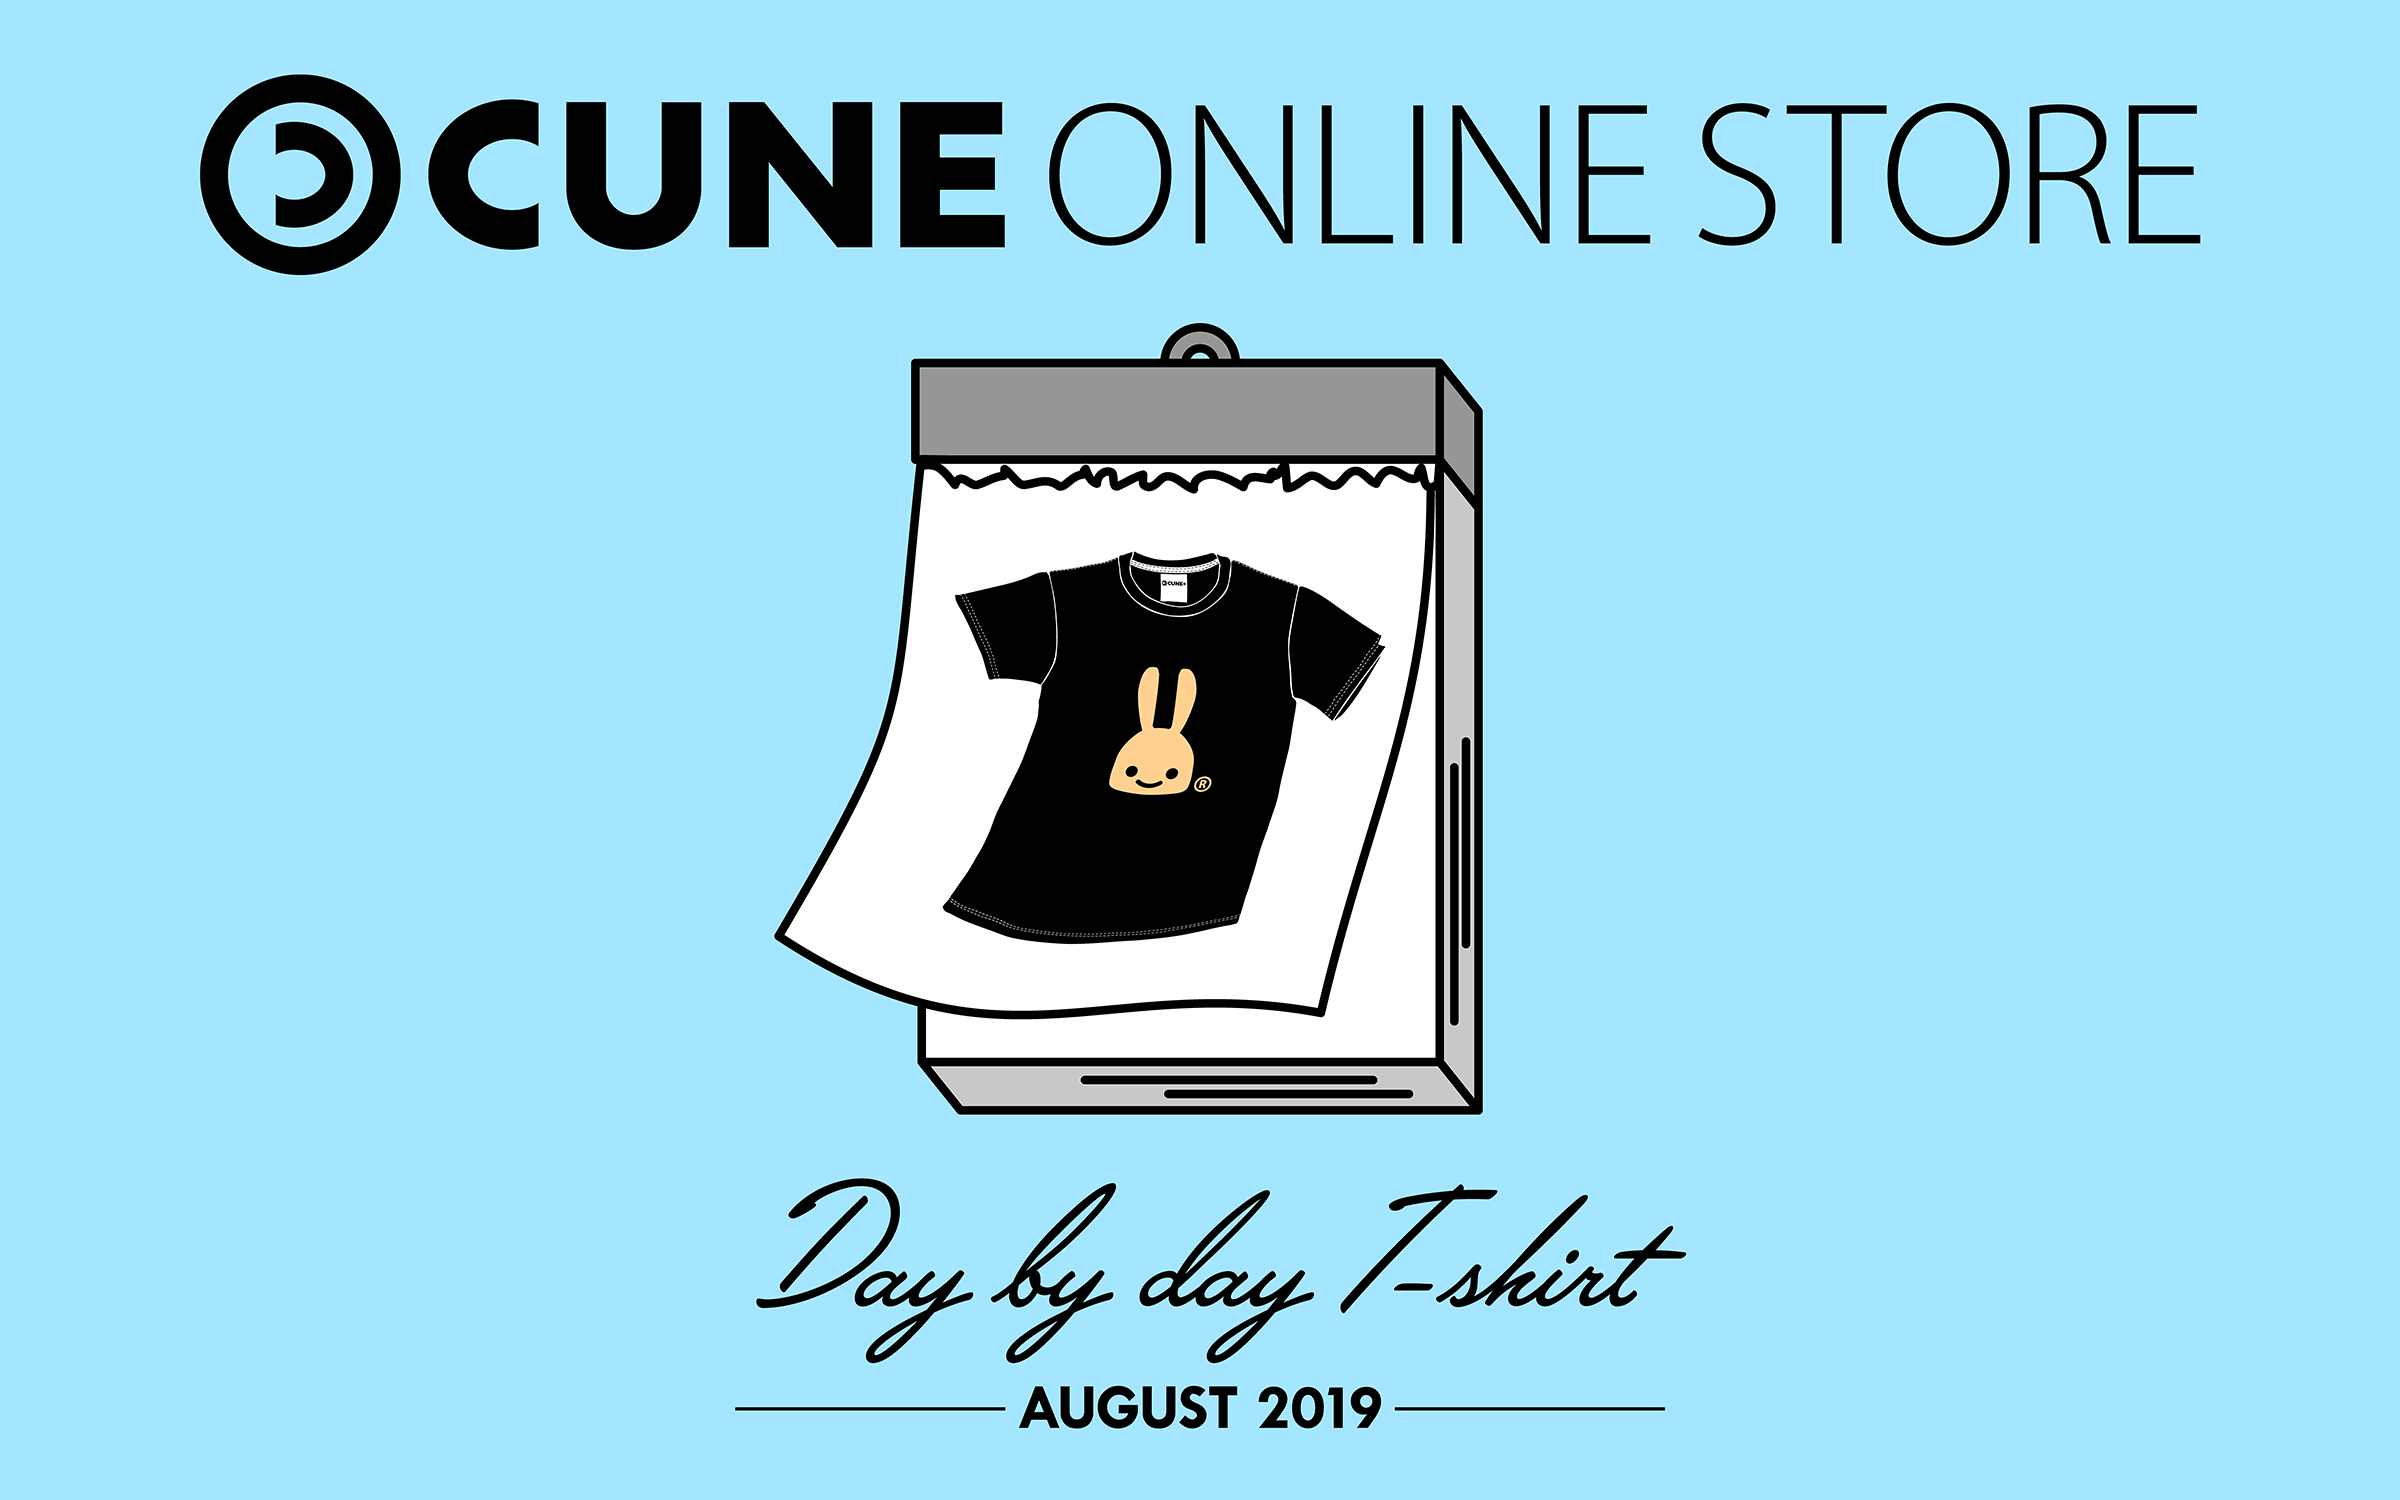 2019 Day by day T-shirt